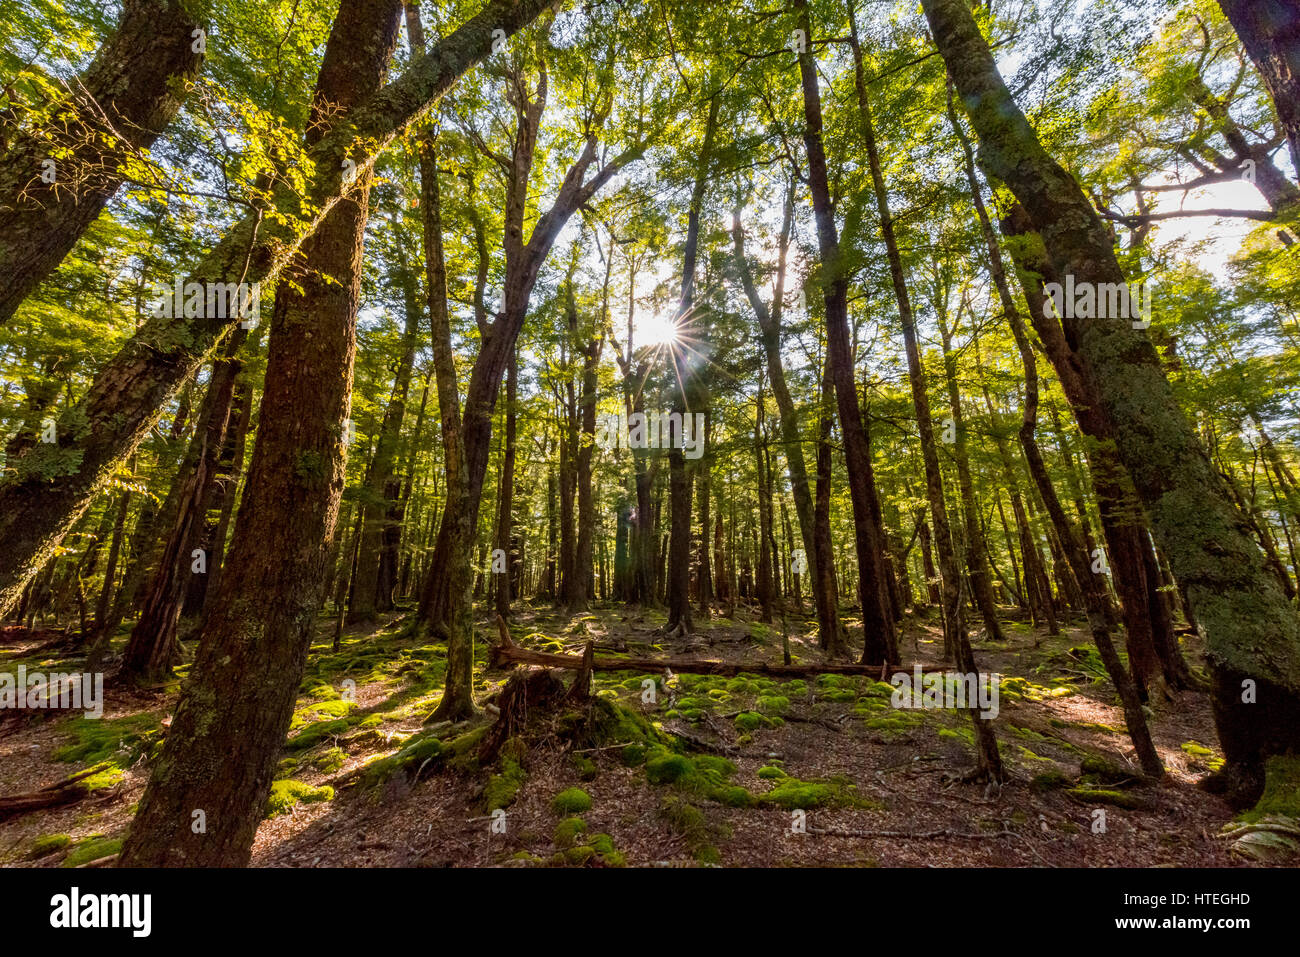 Sun shining through the trees, forest, Mount Aspiring National Park, Otago, Southland, New Zealand Stock Photo